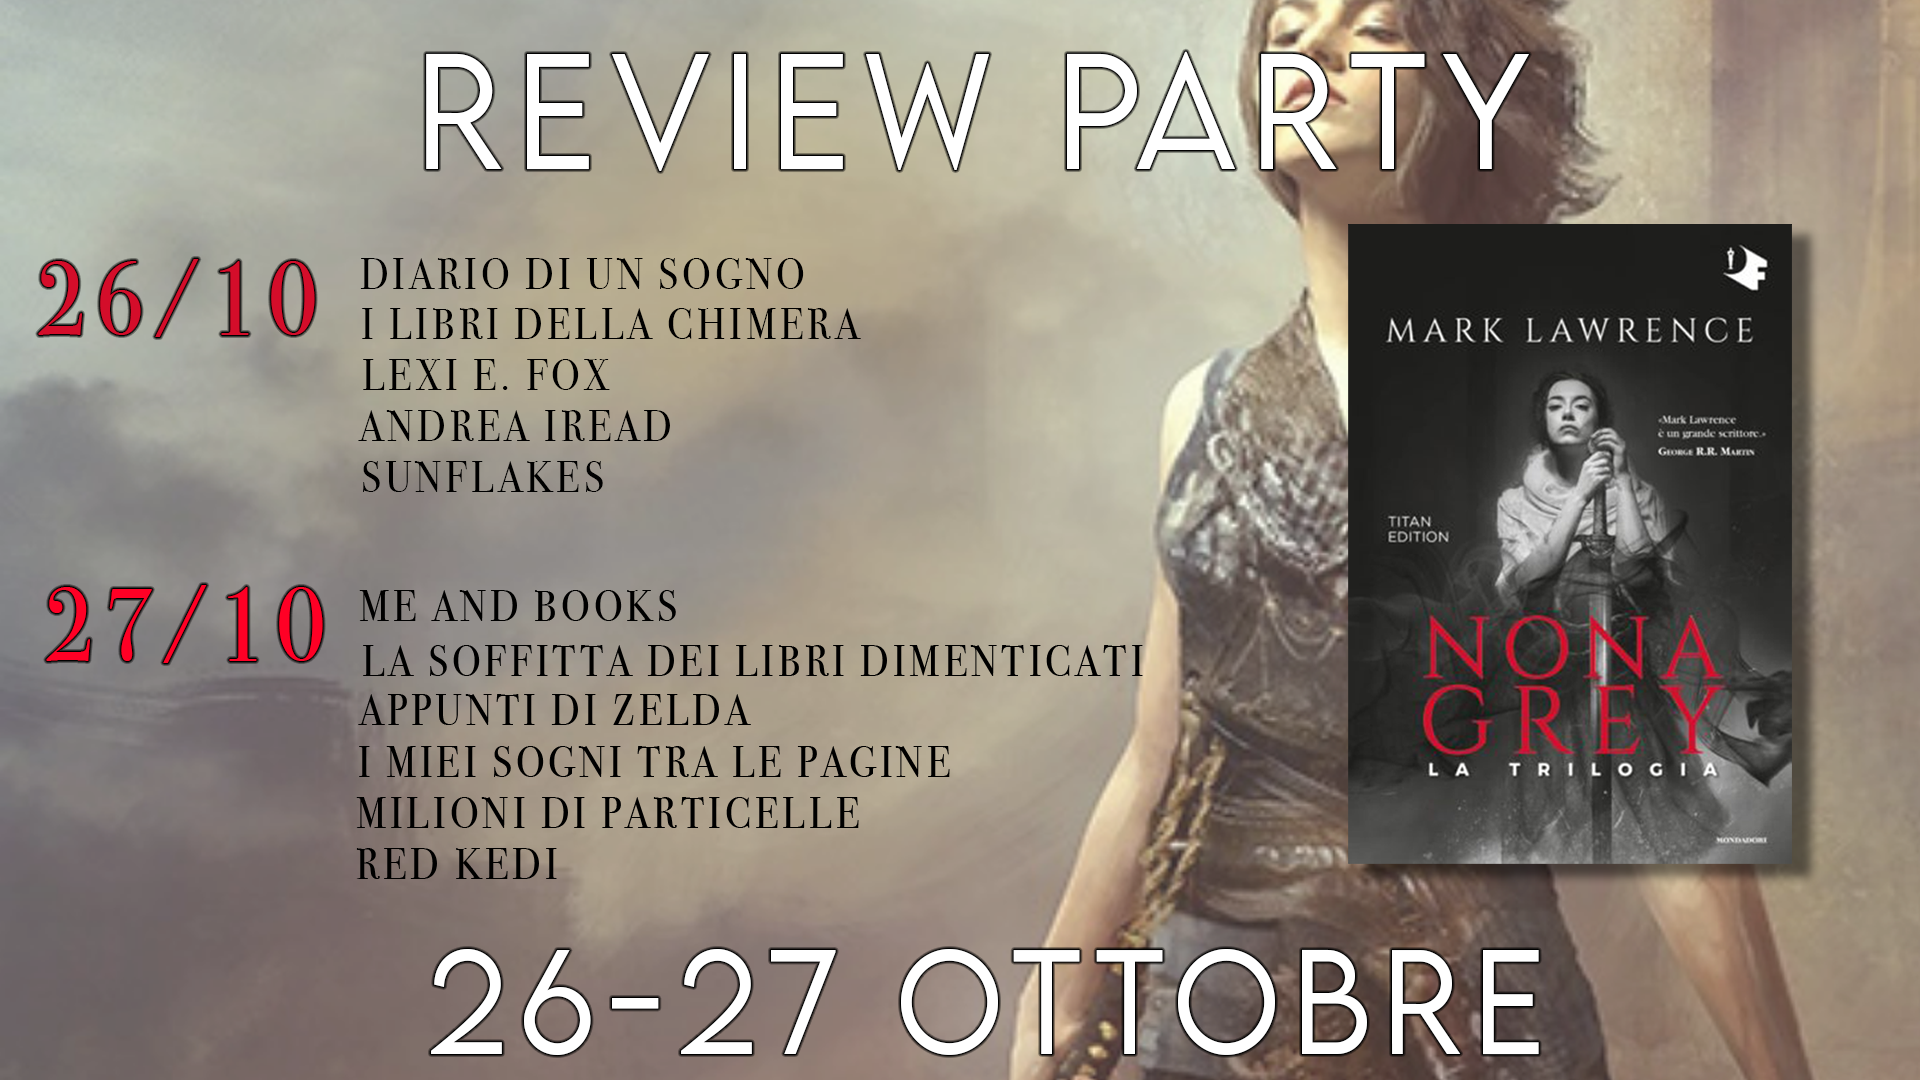 Review Party - Nona Grey 3 di Mark Lawrence